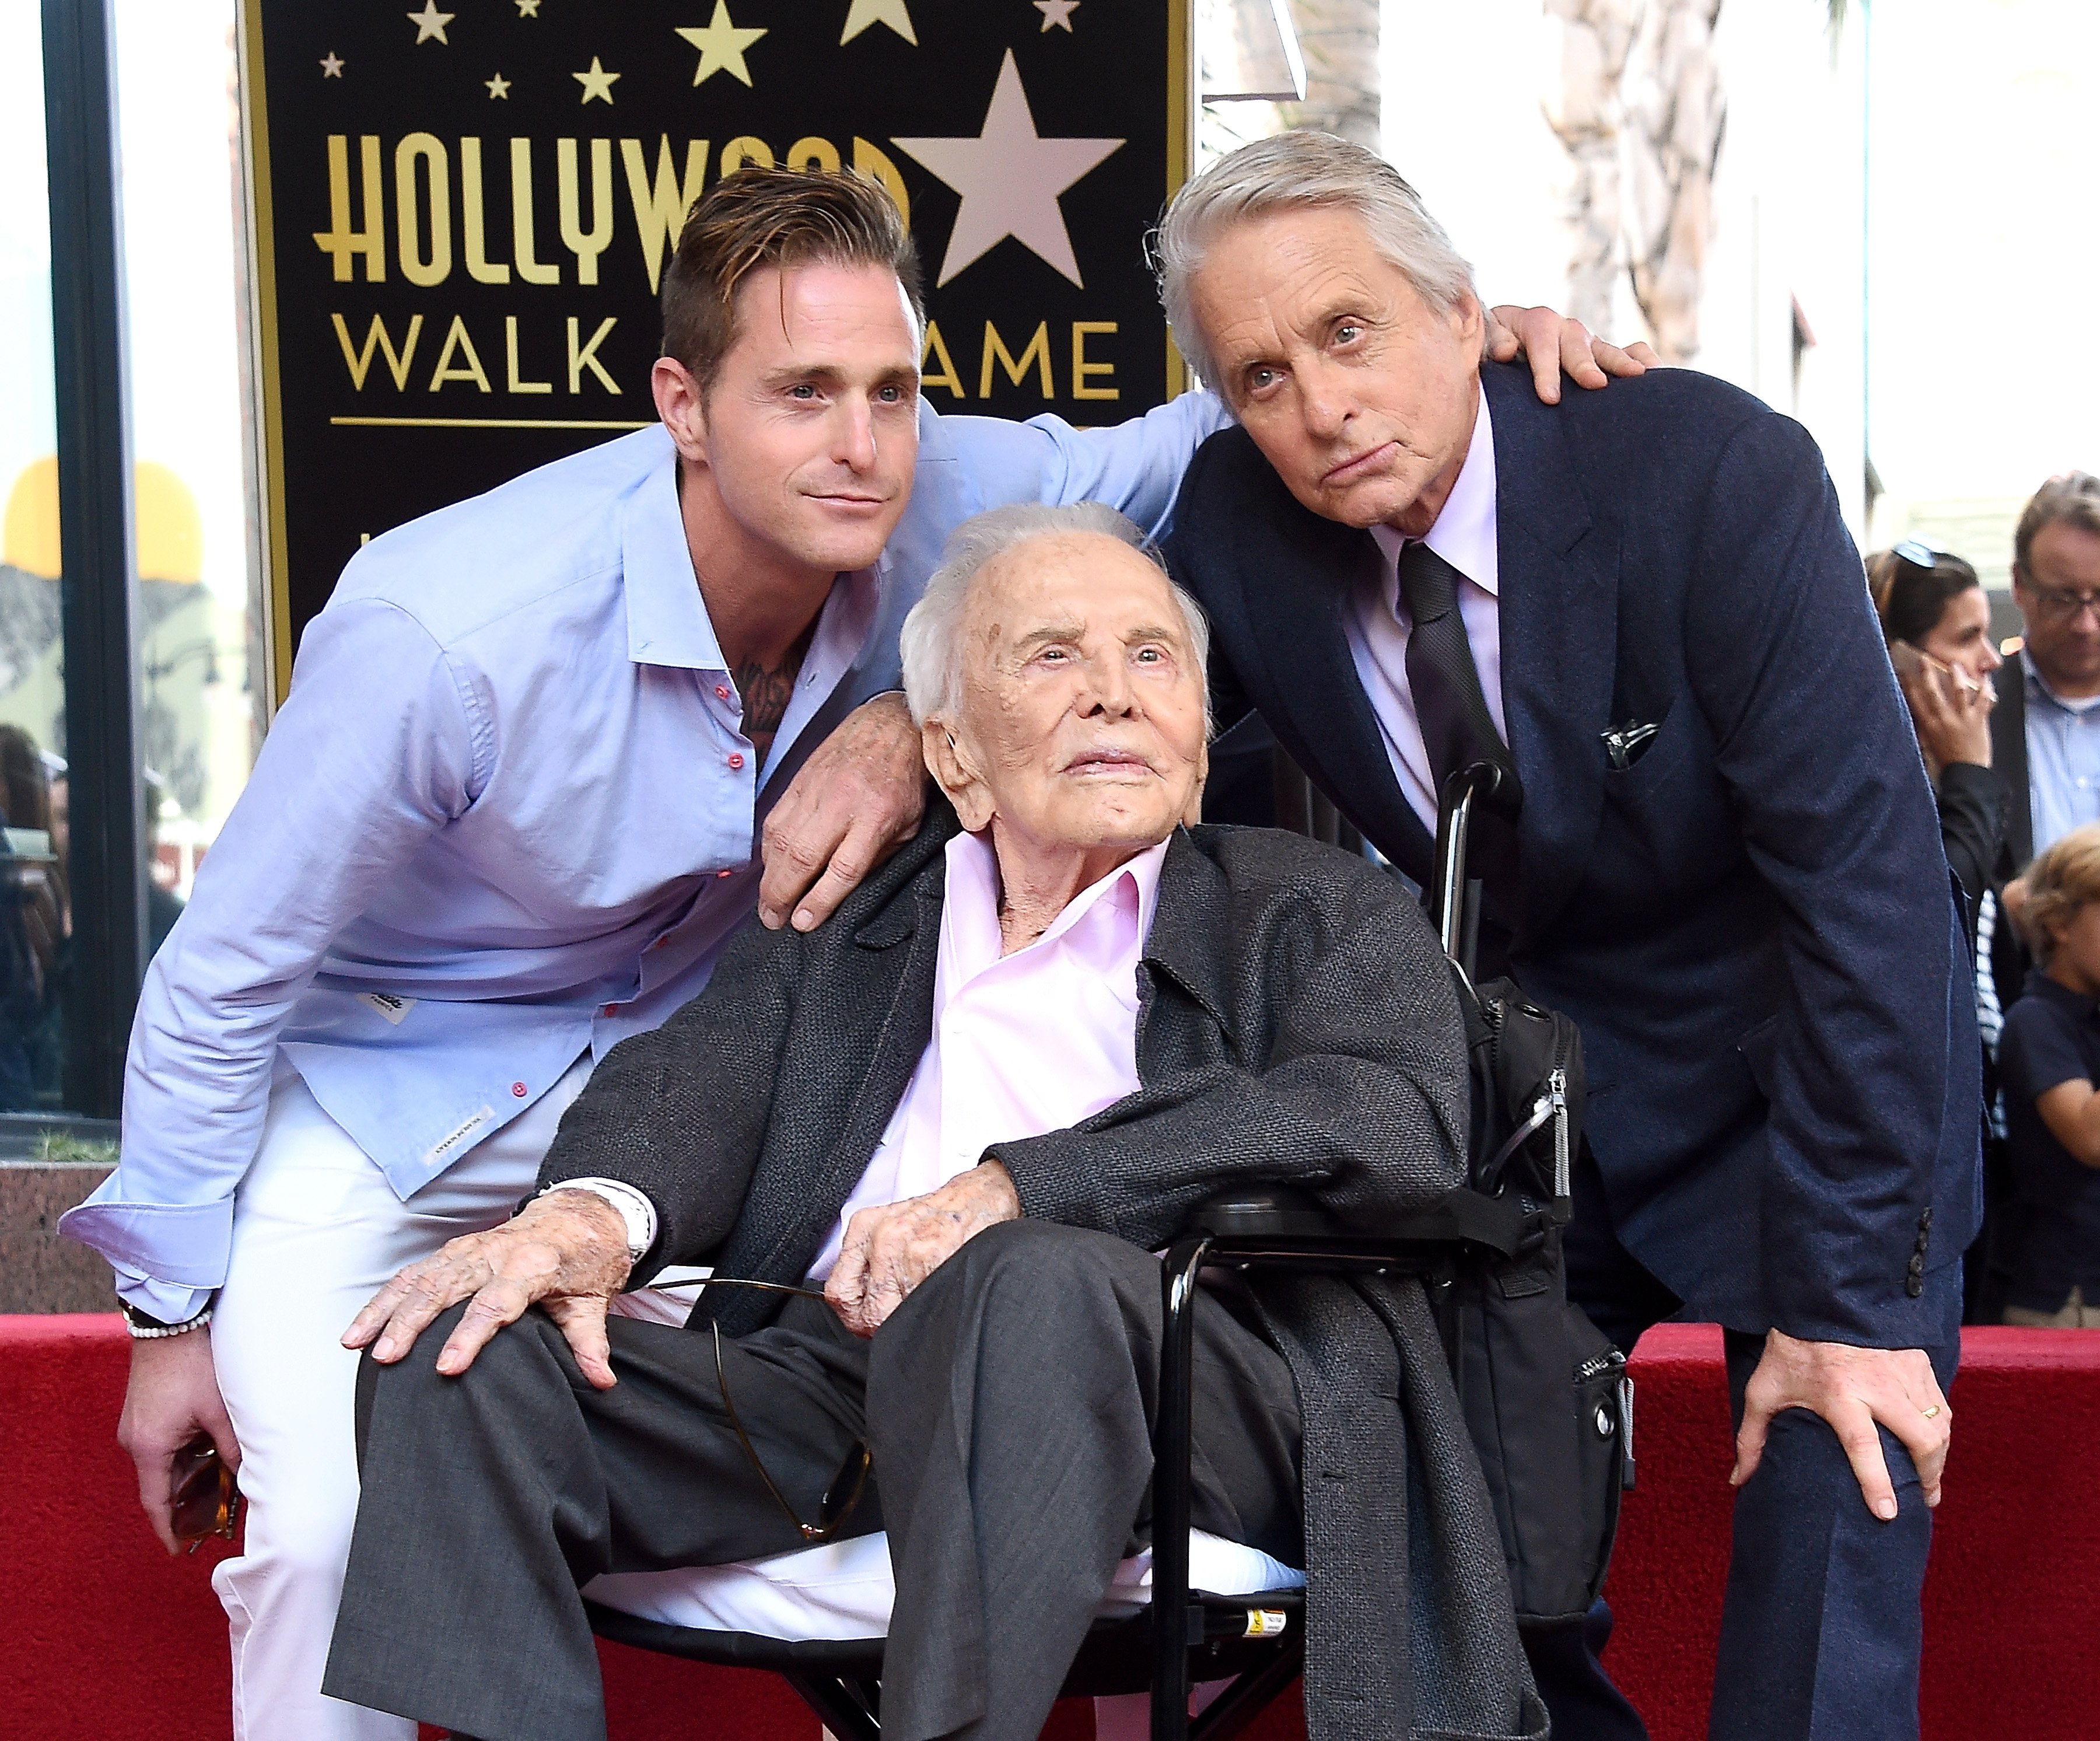 Cameron Douglas, Kirk Douglas, and Michael Douglas pose at The Hollywood Walk Of Fame ceremony on November 6, 2018, in Hollywood, California. | Source: Getty Images.